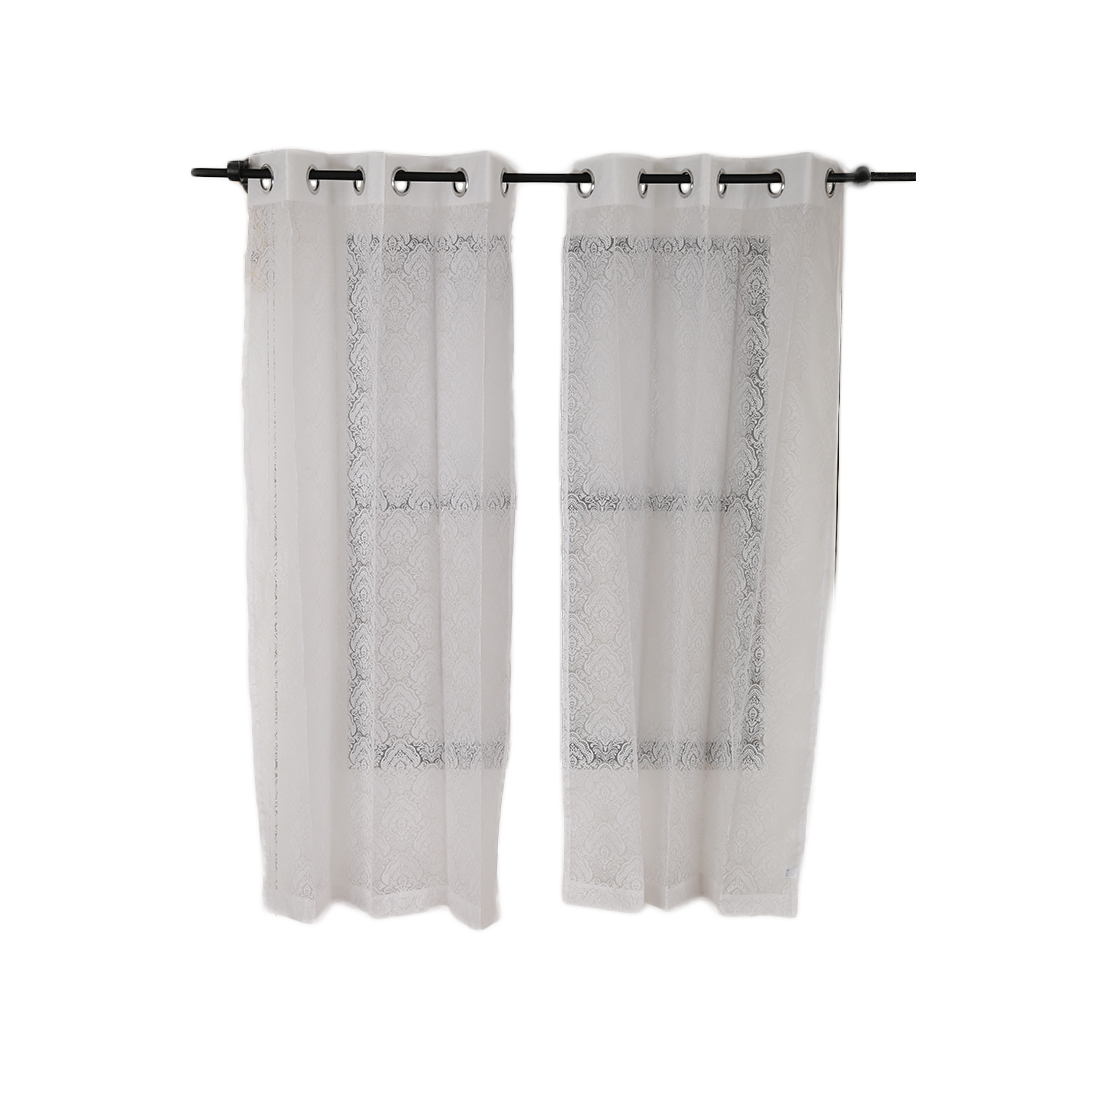 Amour Sheer Window Curtain White Set of 2 Cotton Polyester Sheer Curtains in White Colour by Living Essence